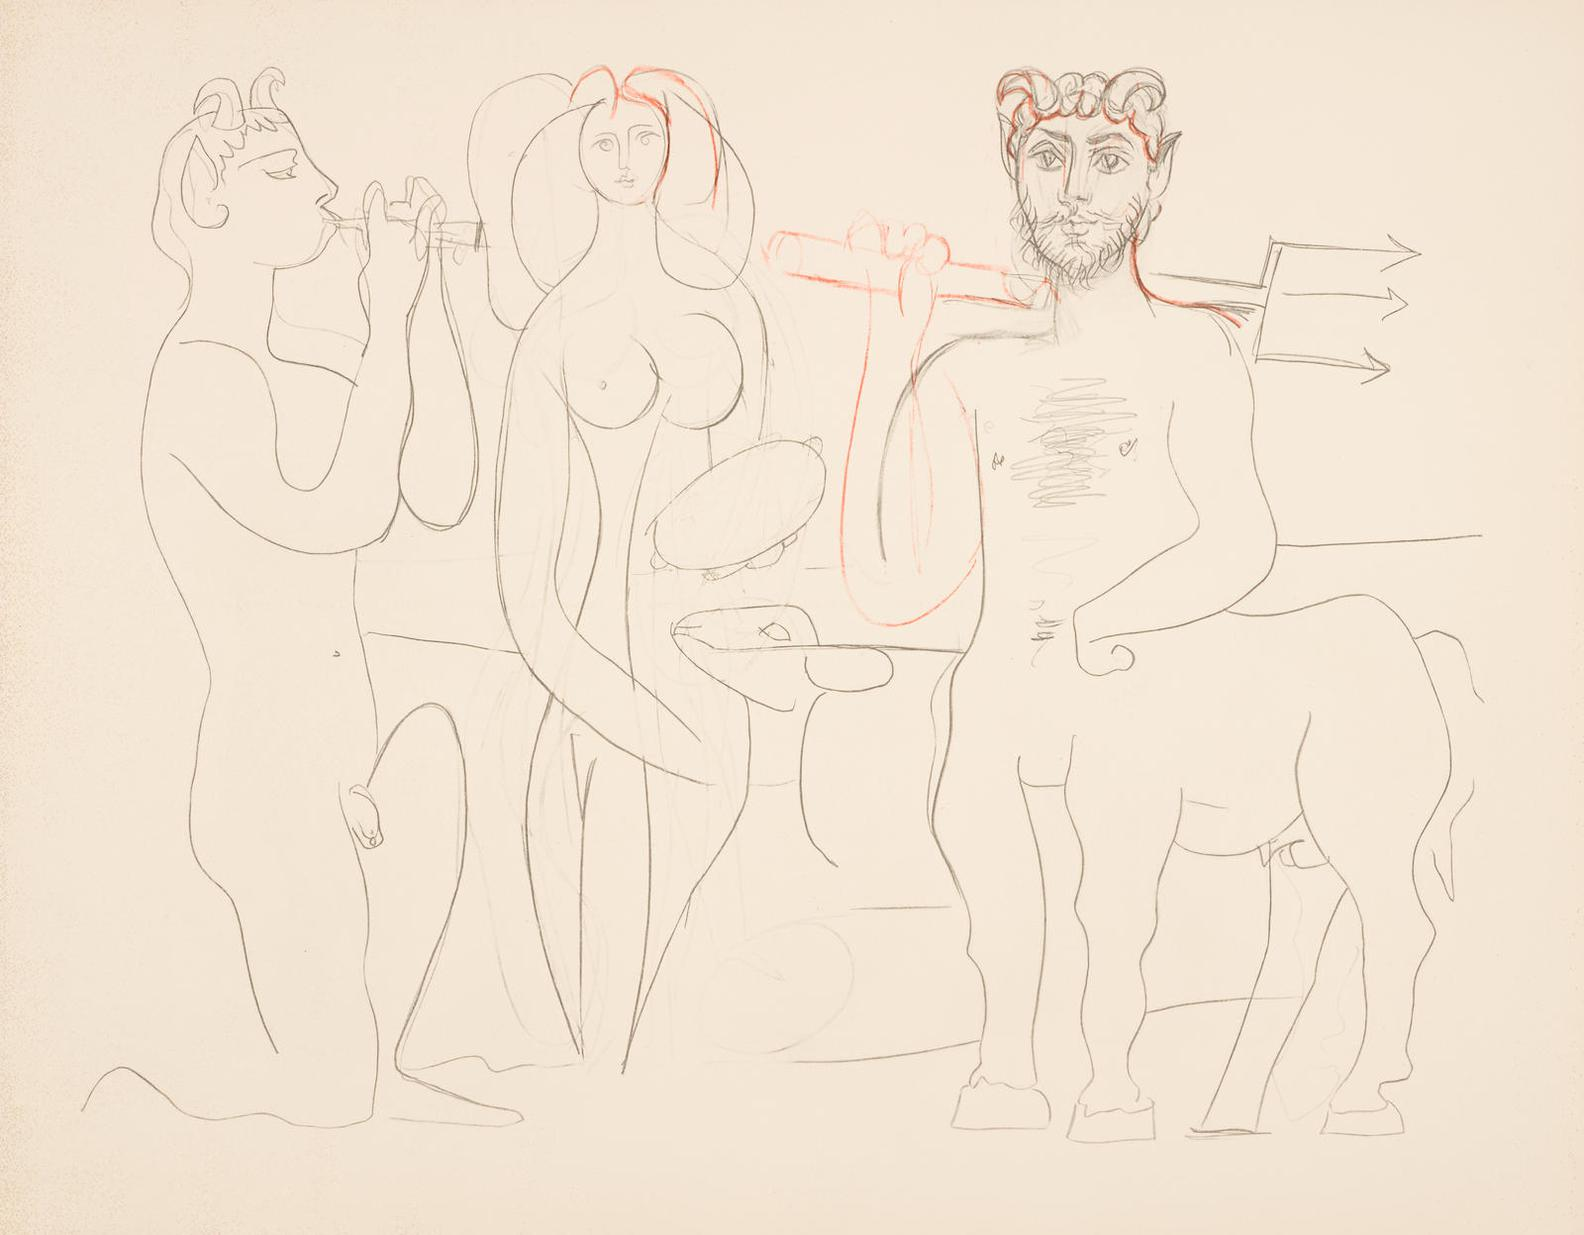 Pablo Picasso-After Pablo Picasso - Mes Dessins Aantibes-1958